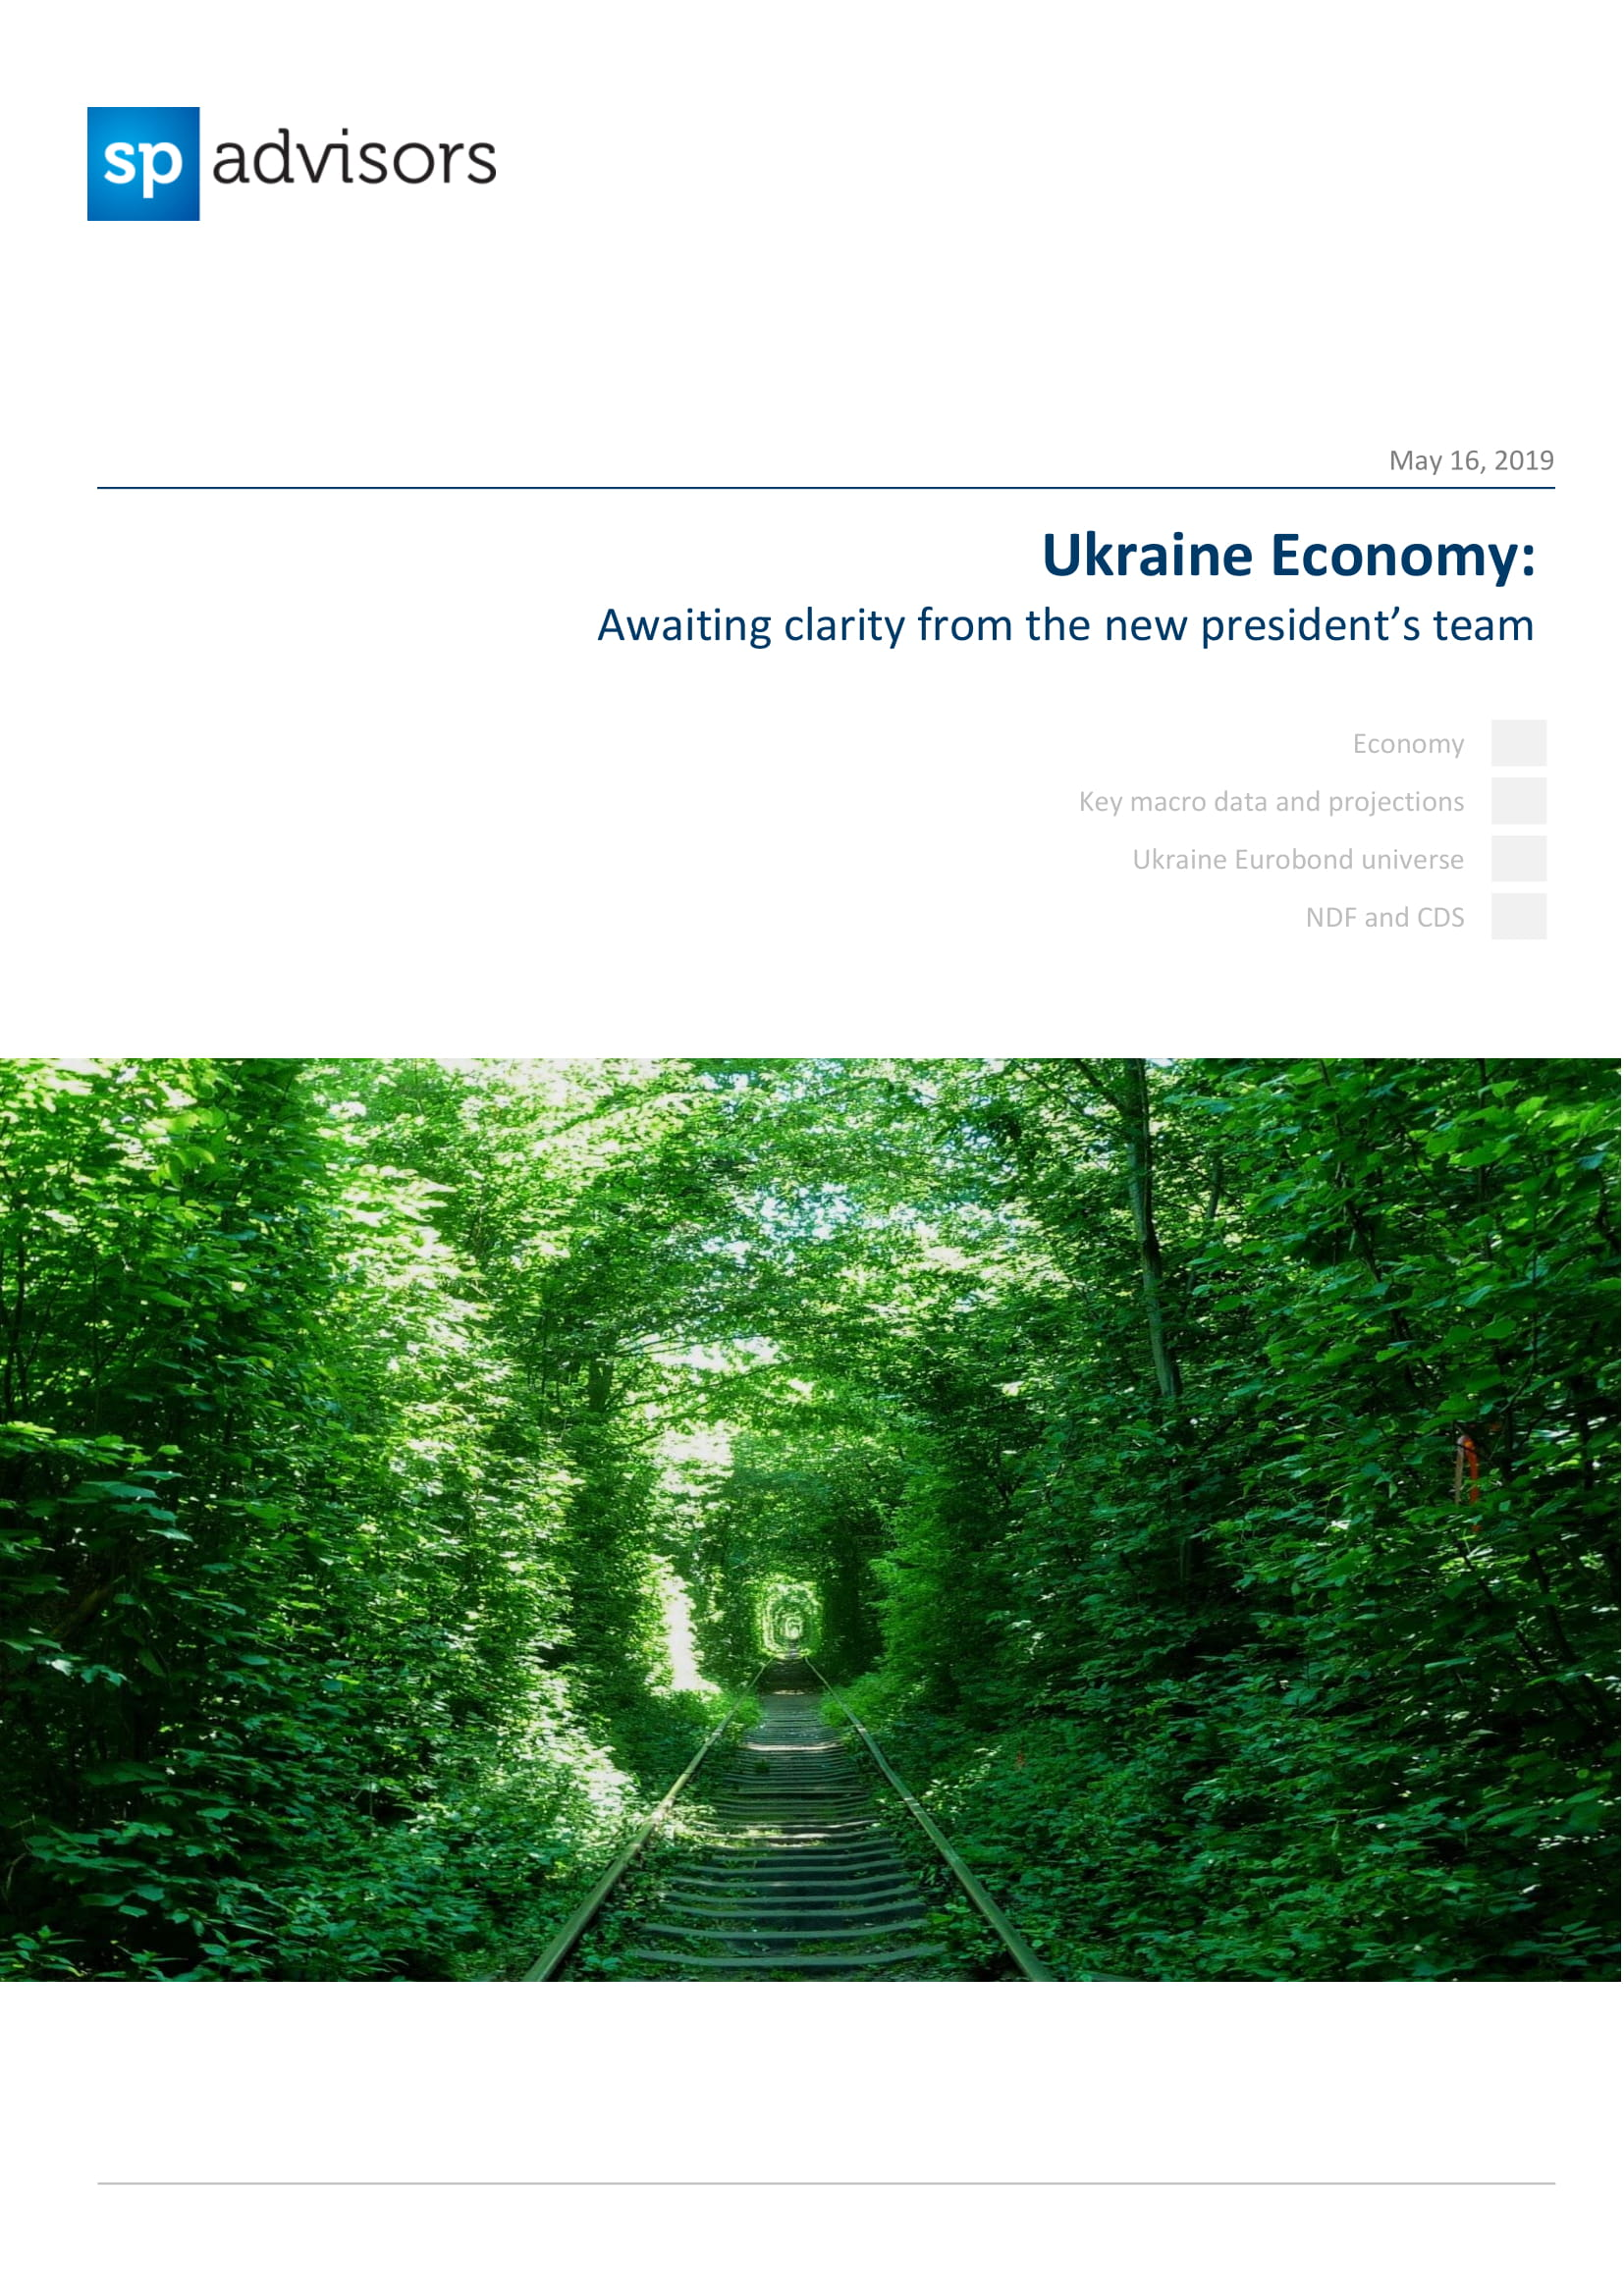 Ukraine Economy: Awaiting clarity from the new president's team